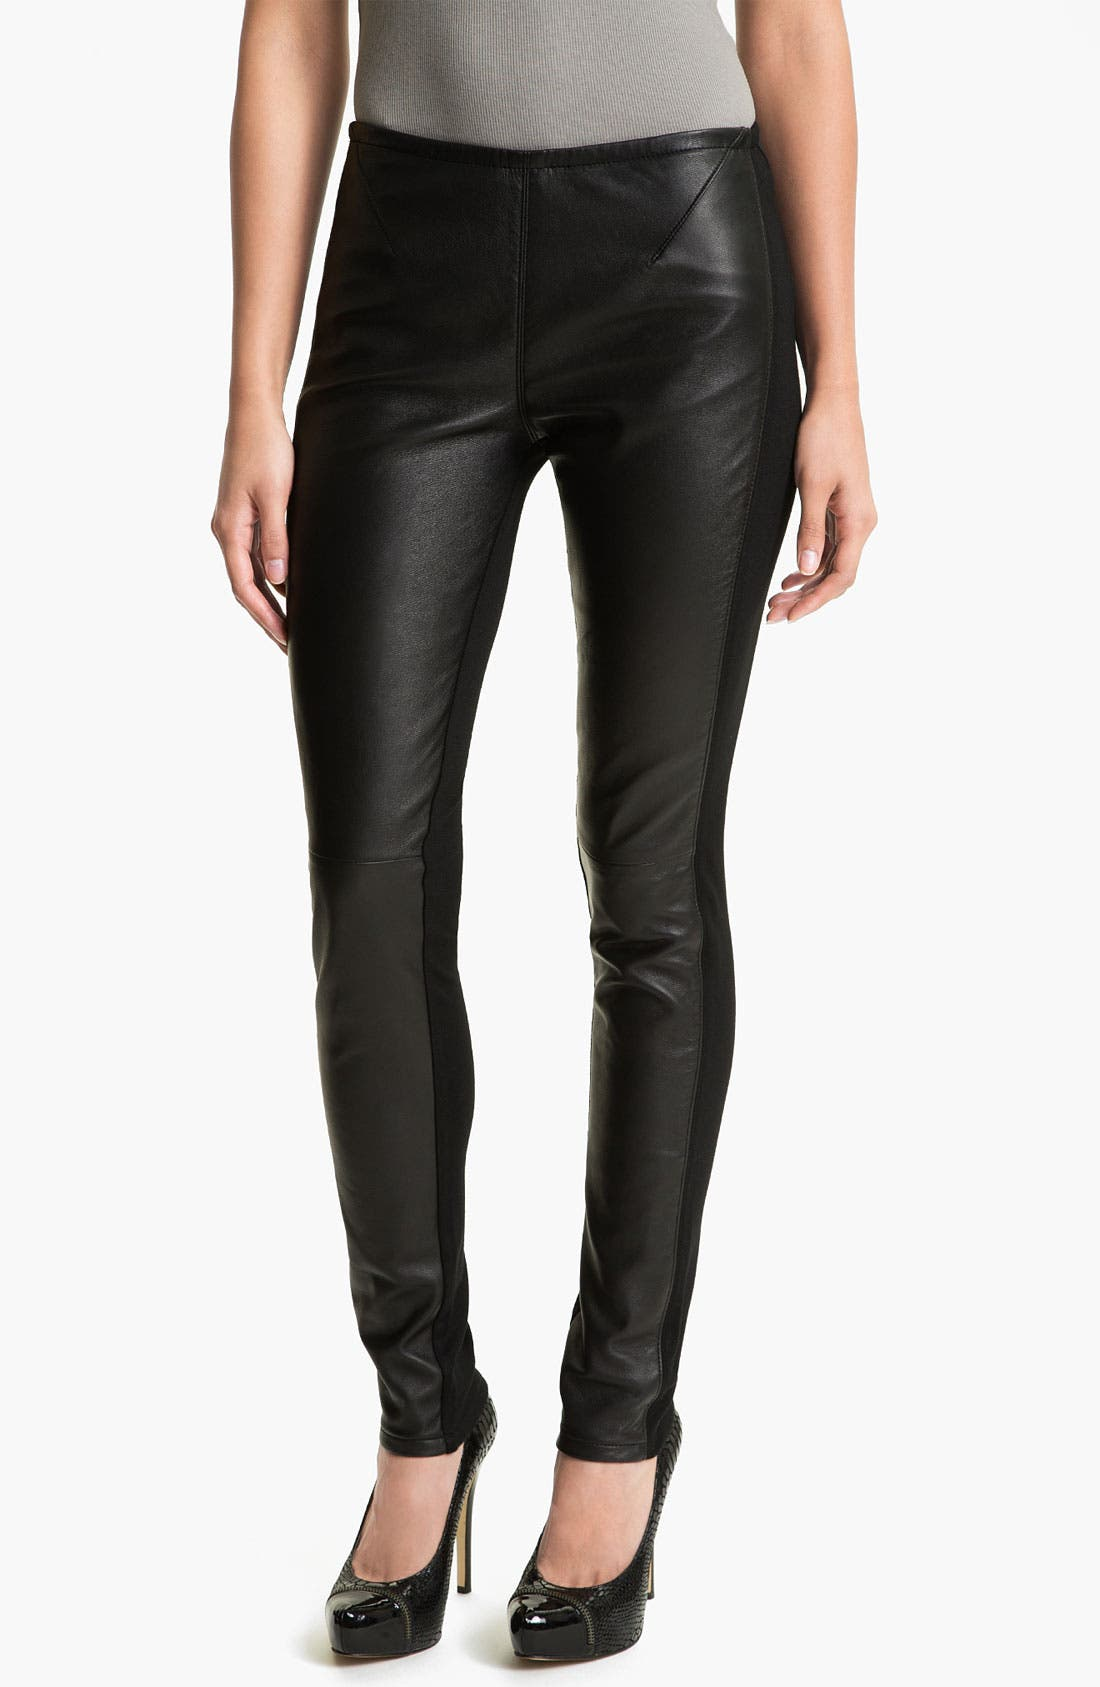 Alternate Image 1 Selected - Two by Vince Camuto Faux Leather & Knit Leggings